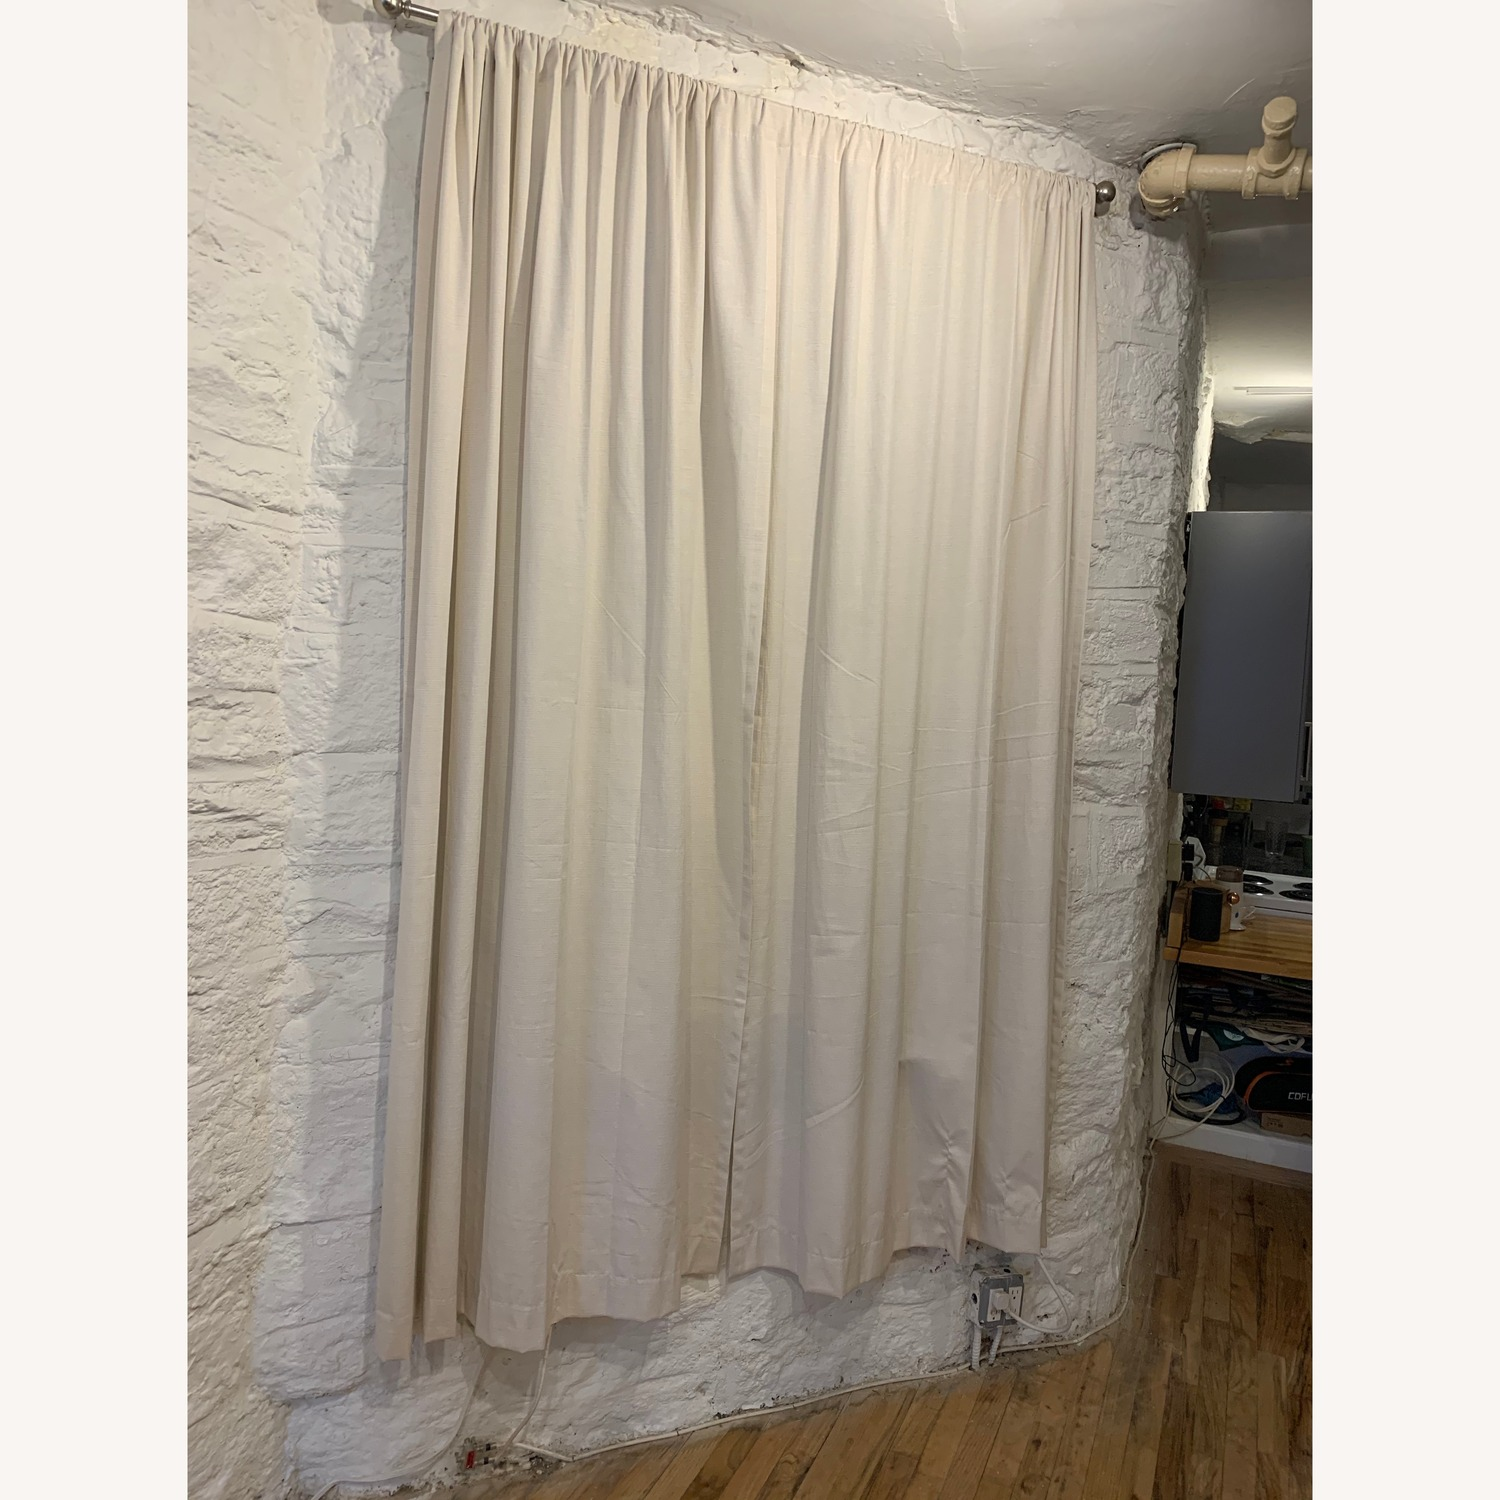 Off-White Linen Curtains